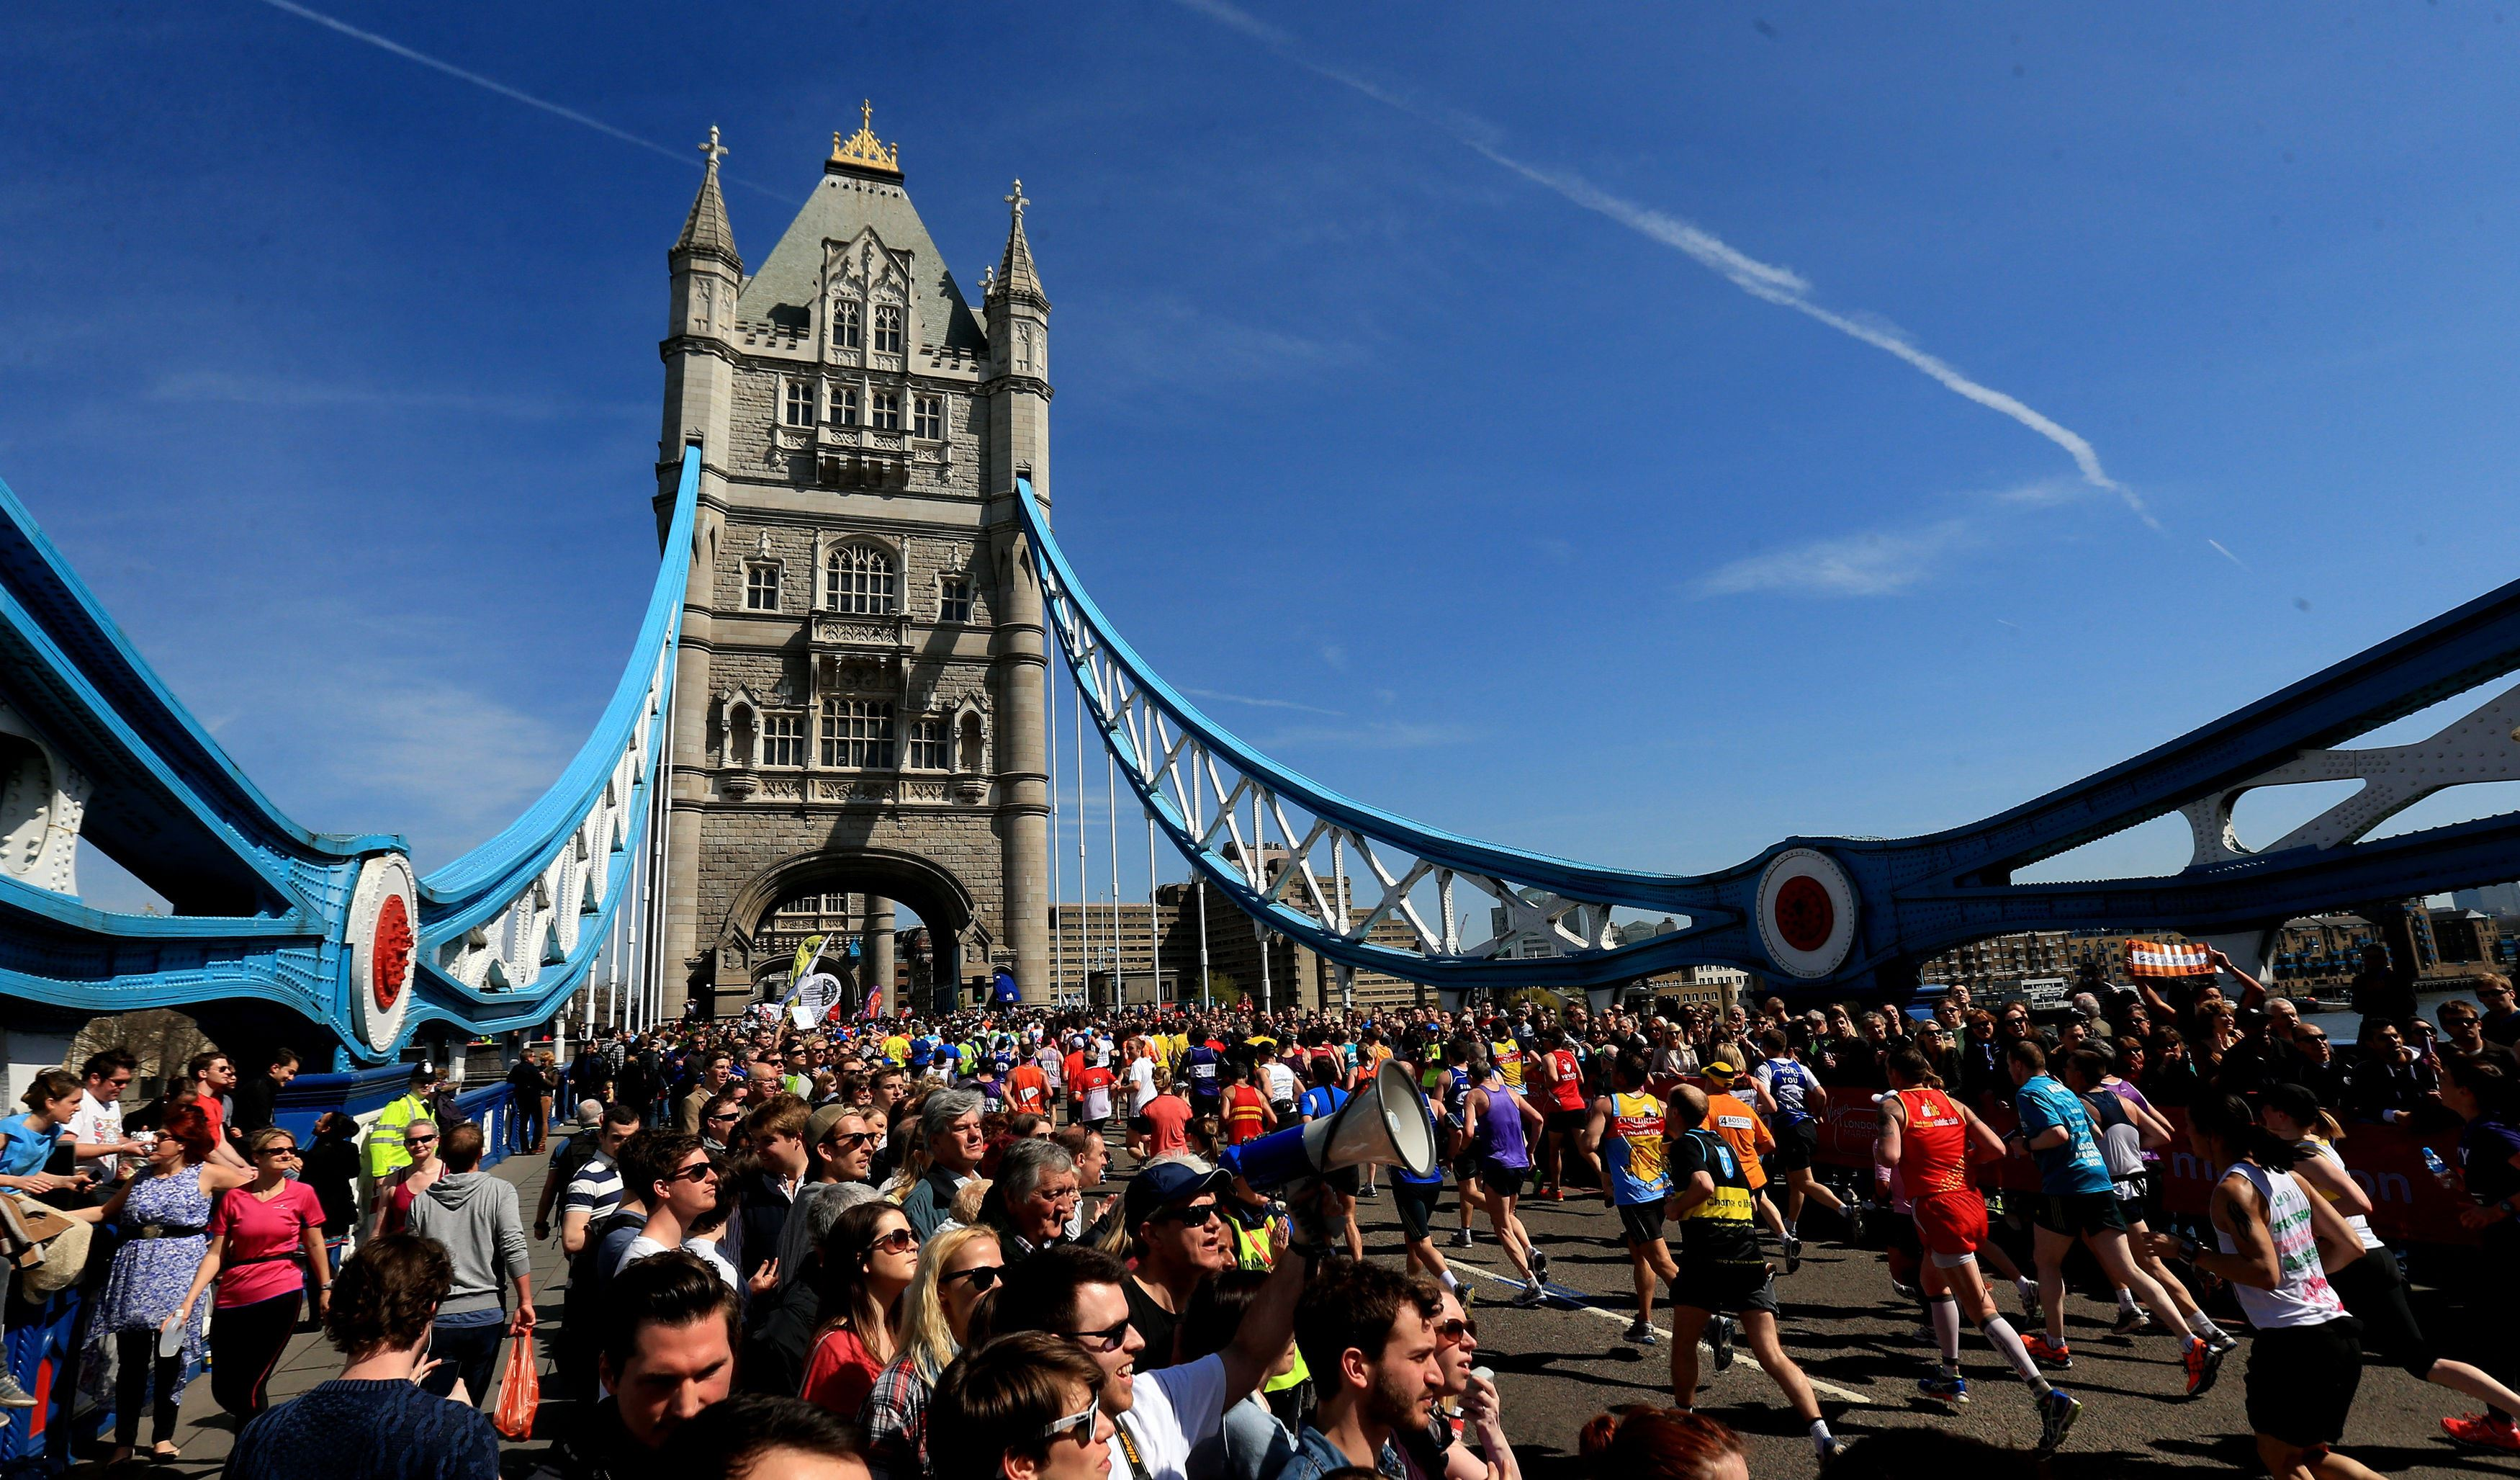 Alles over de Virgin Money London Marathon en hoe jij er aan mee kunt doen